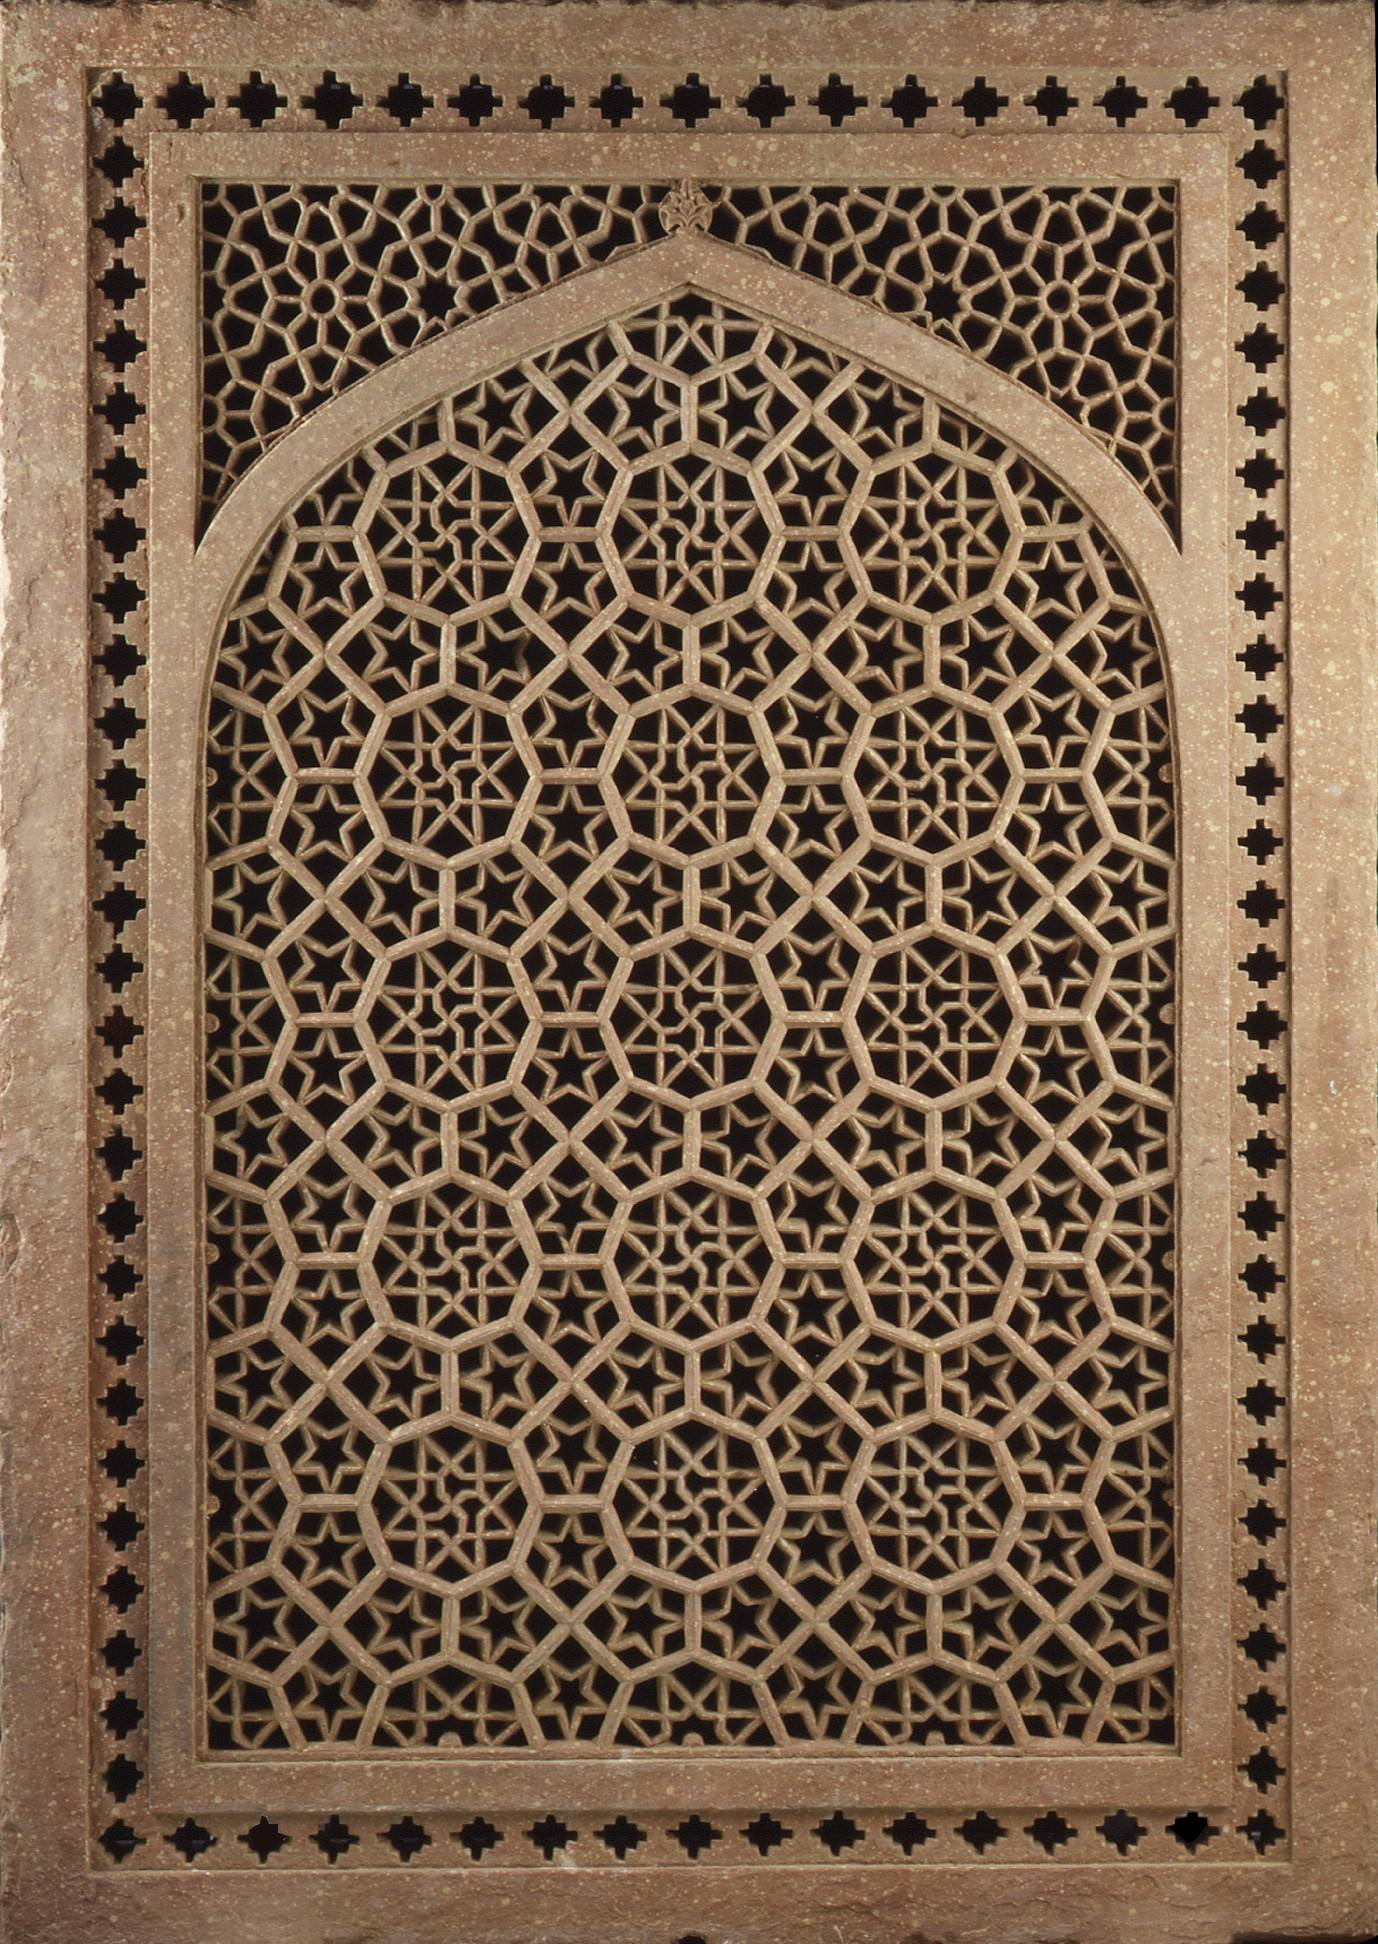 Jali Screen Second Half Of The Th Century India Red - Carved wood lace like lighting design inspired islamic decoration patterns